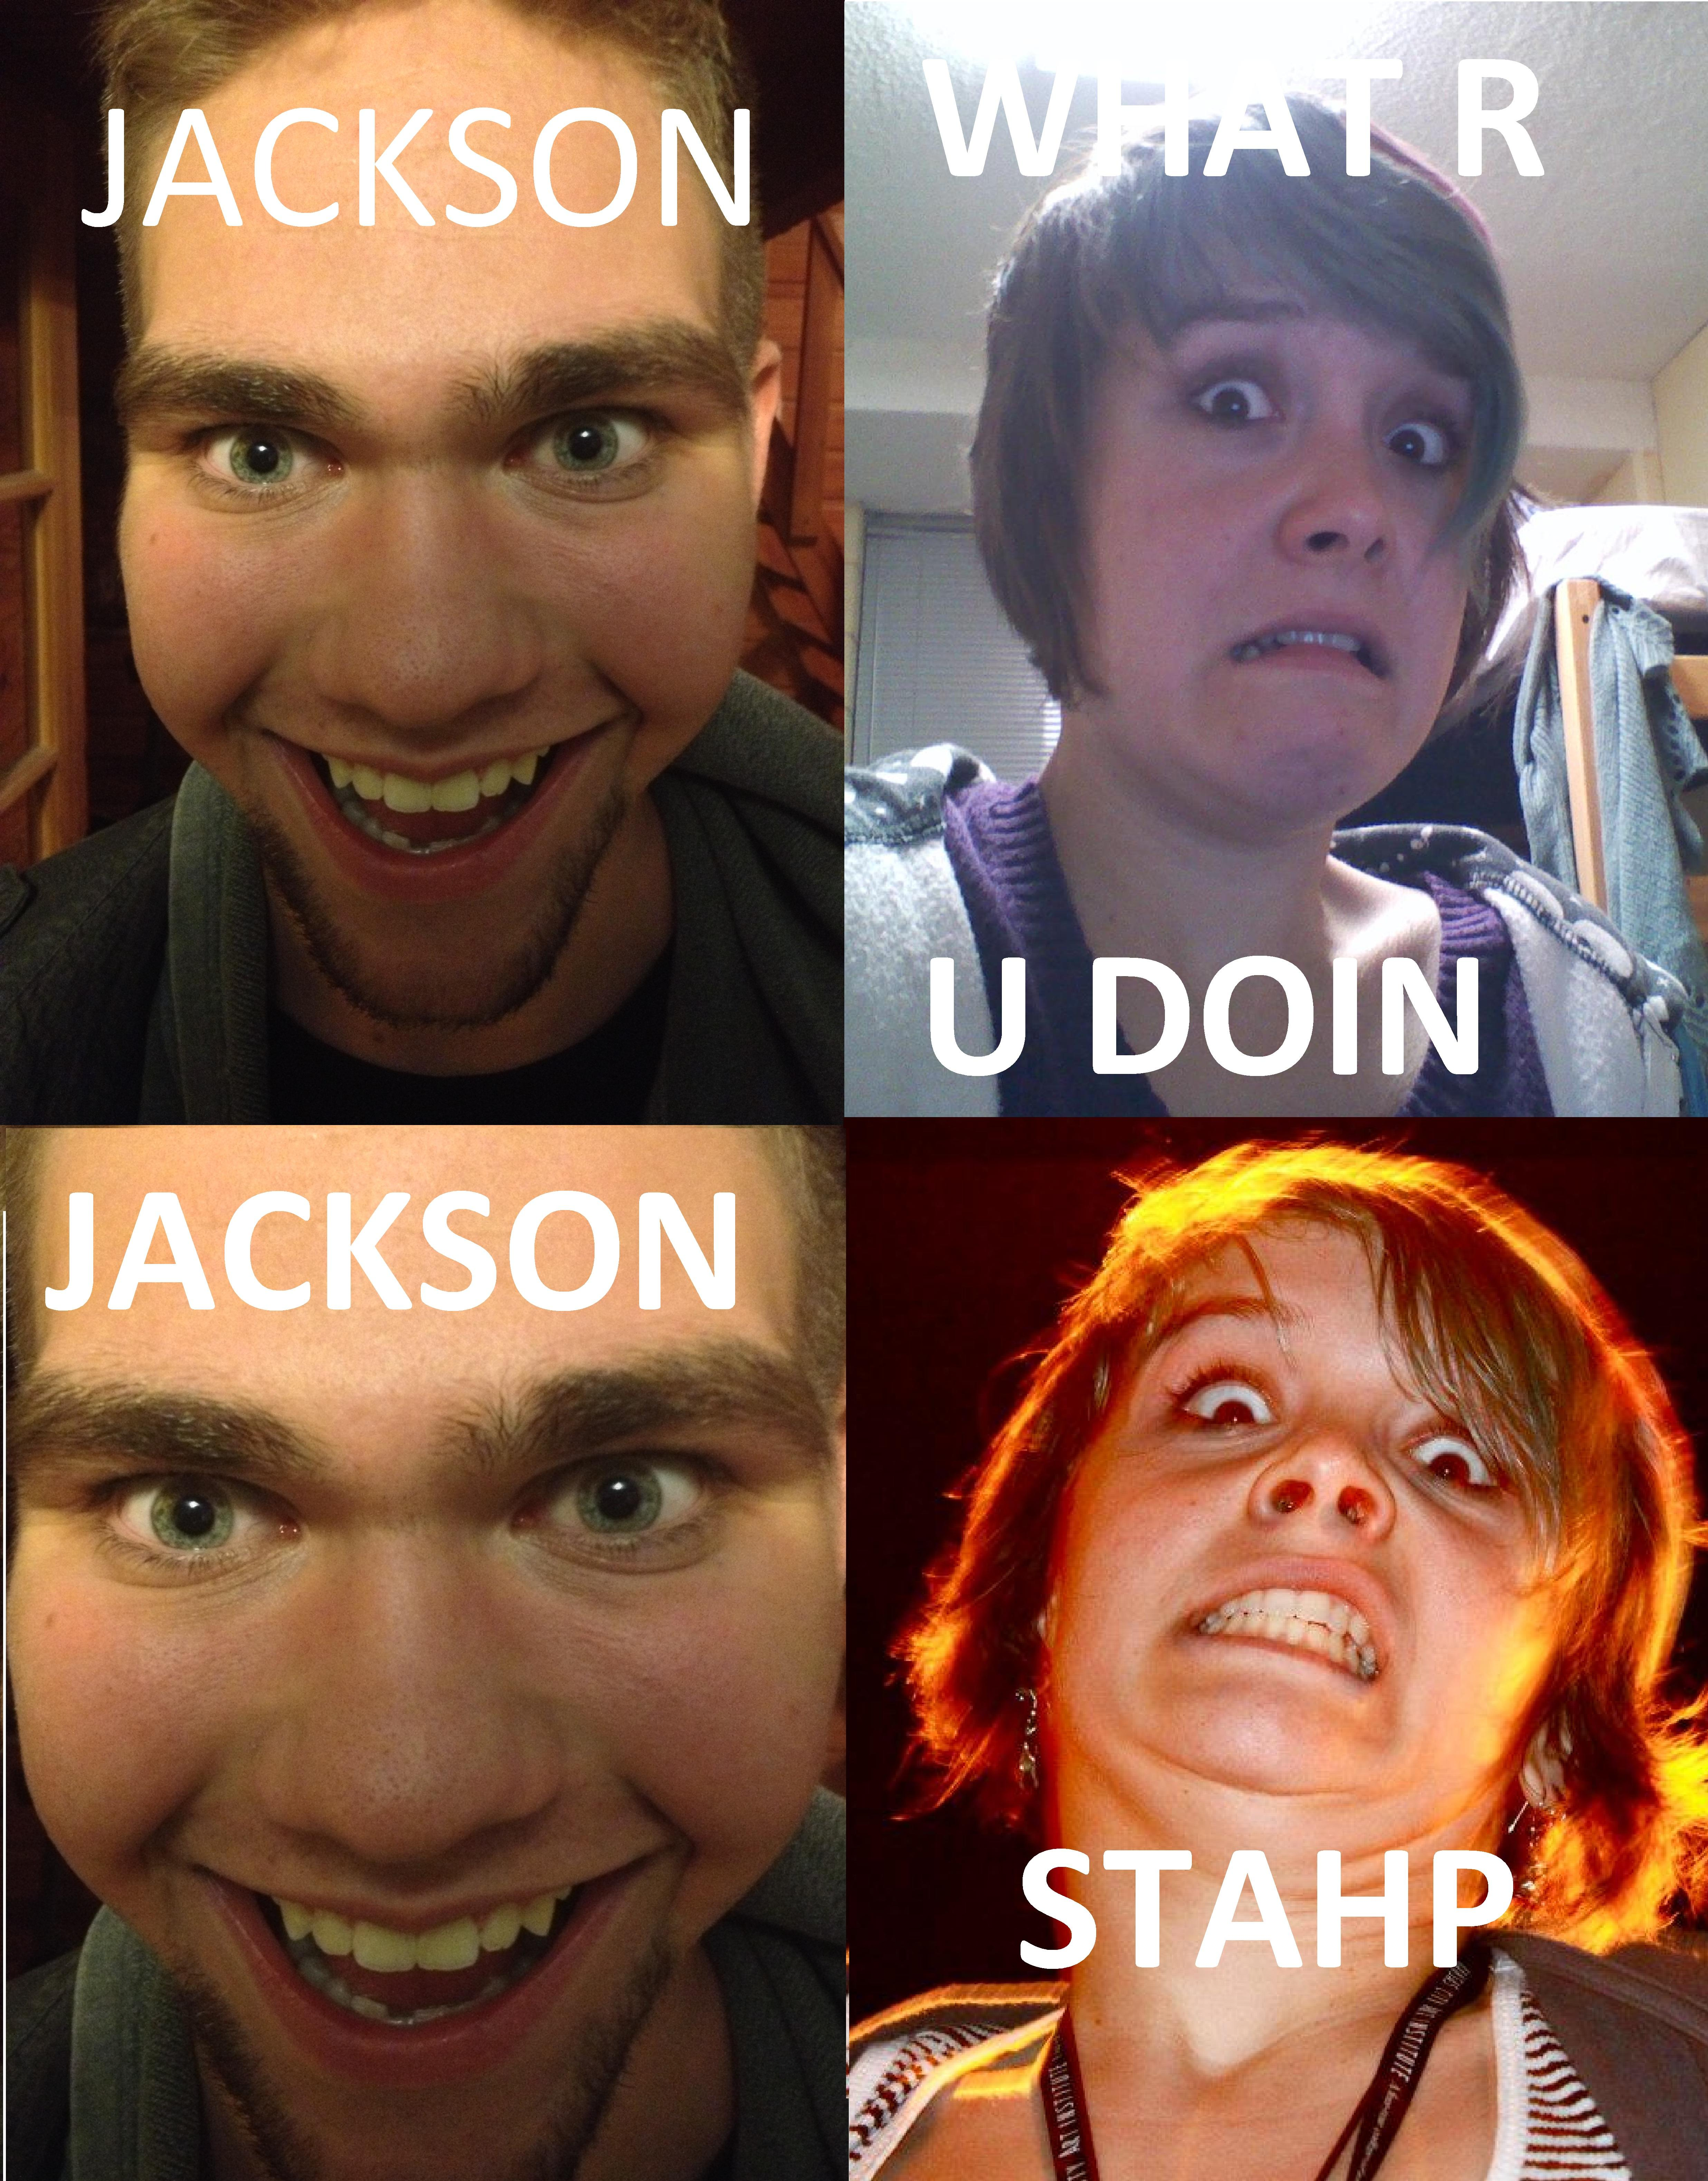 Jackson stahp stahp know your meme ccuart Image collections